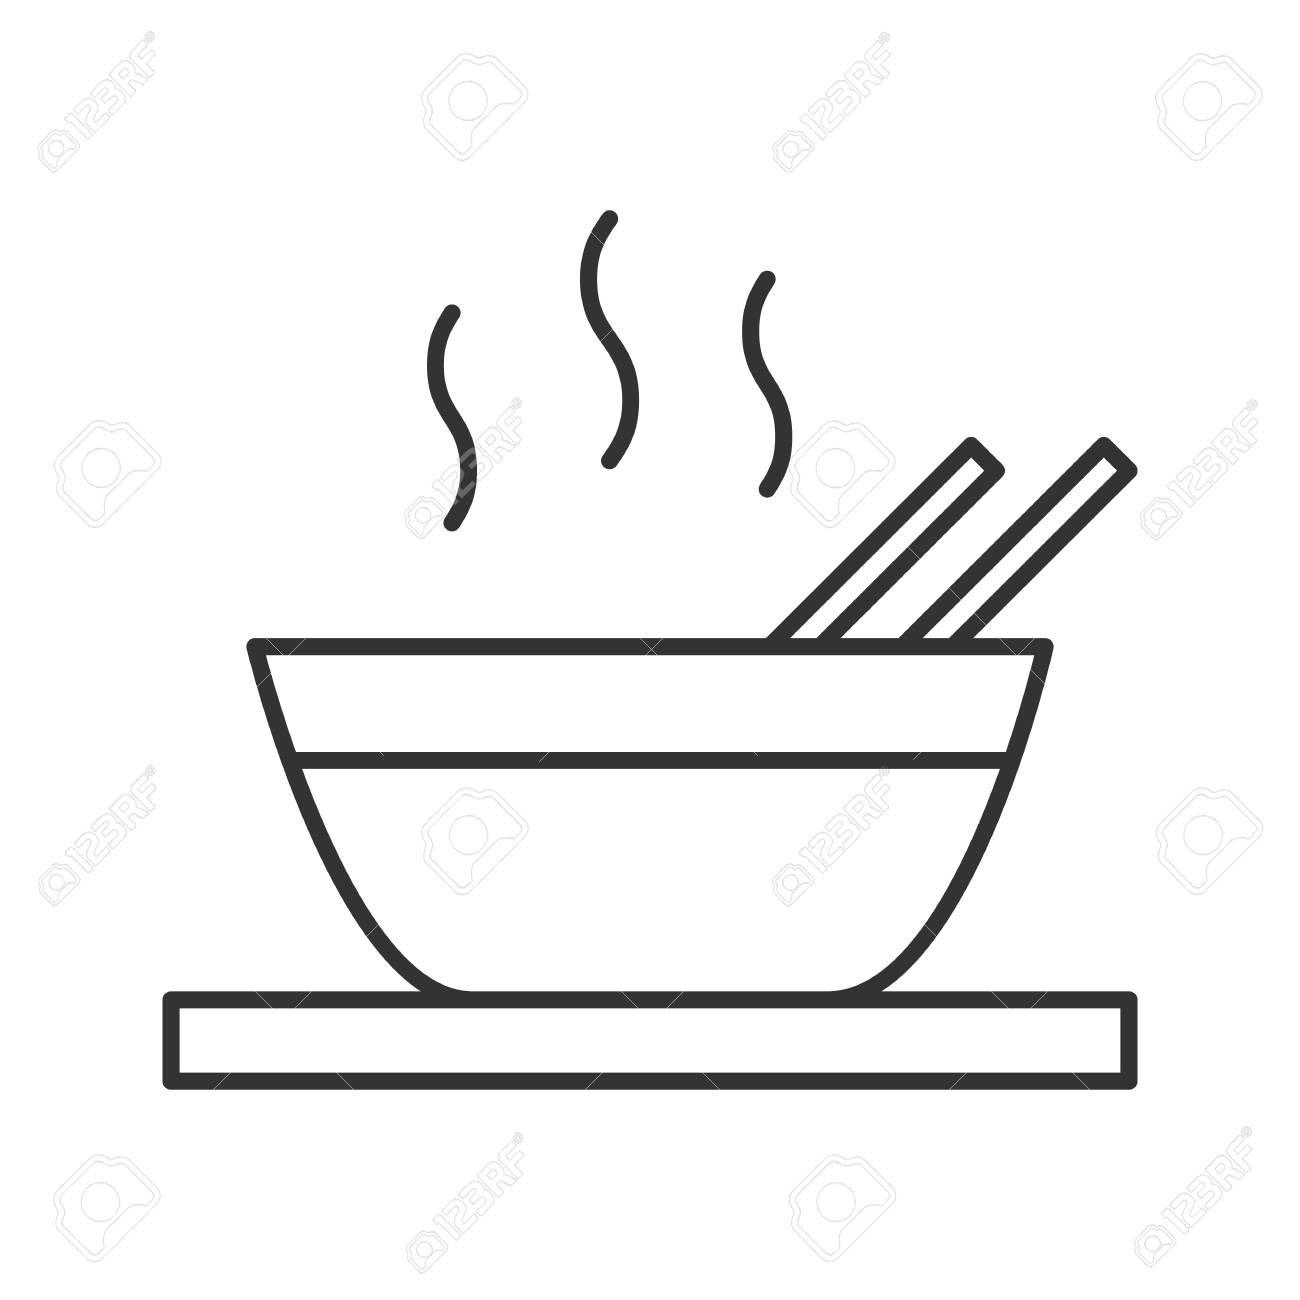 Hot Chinese Dish Linear Icon Thin Line Illustration Soup Ramen